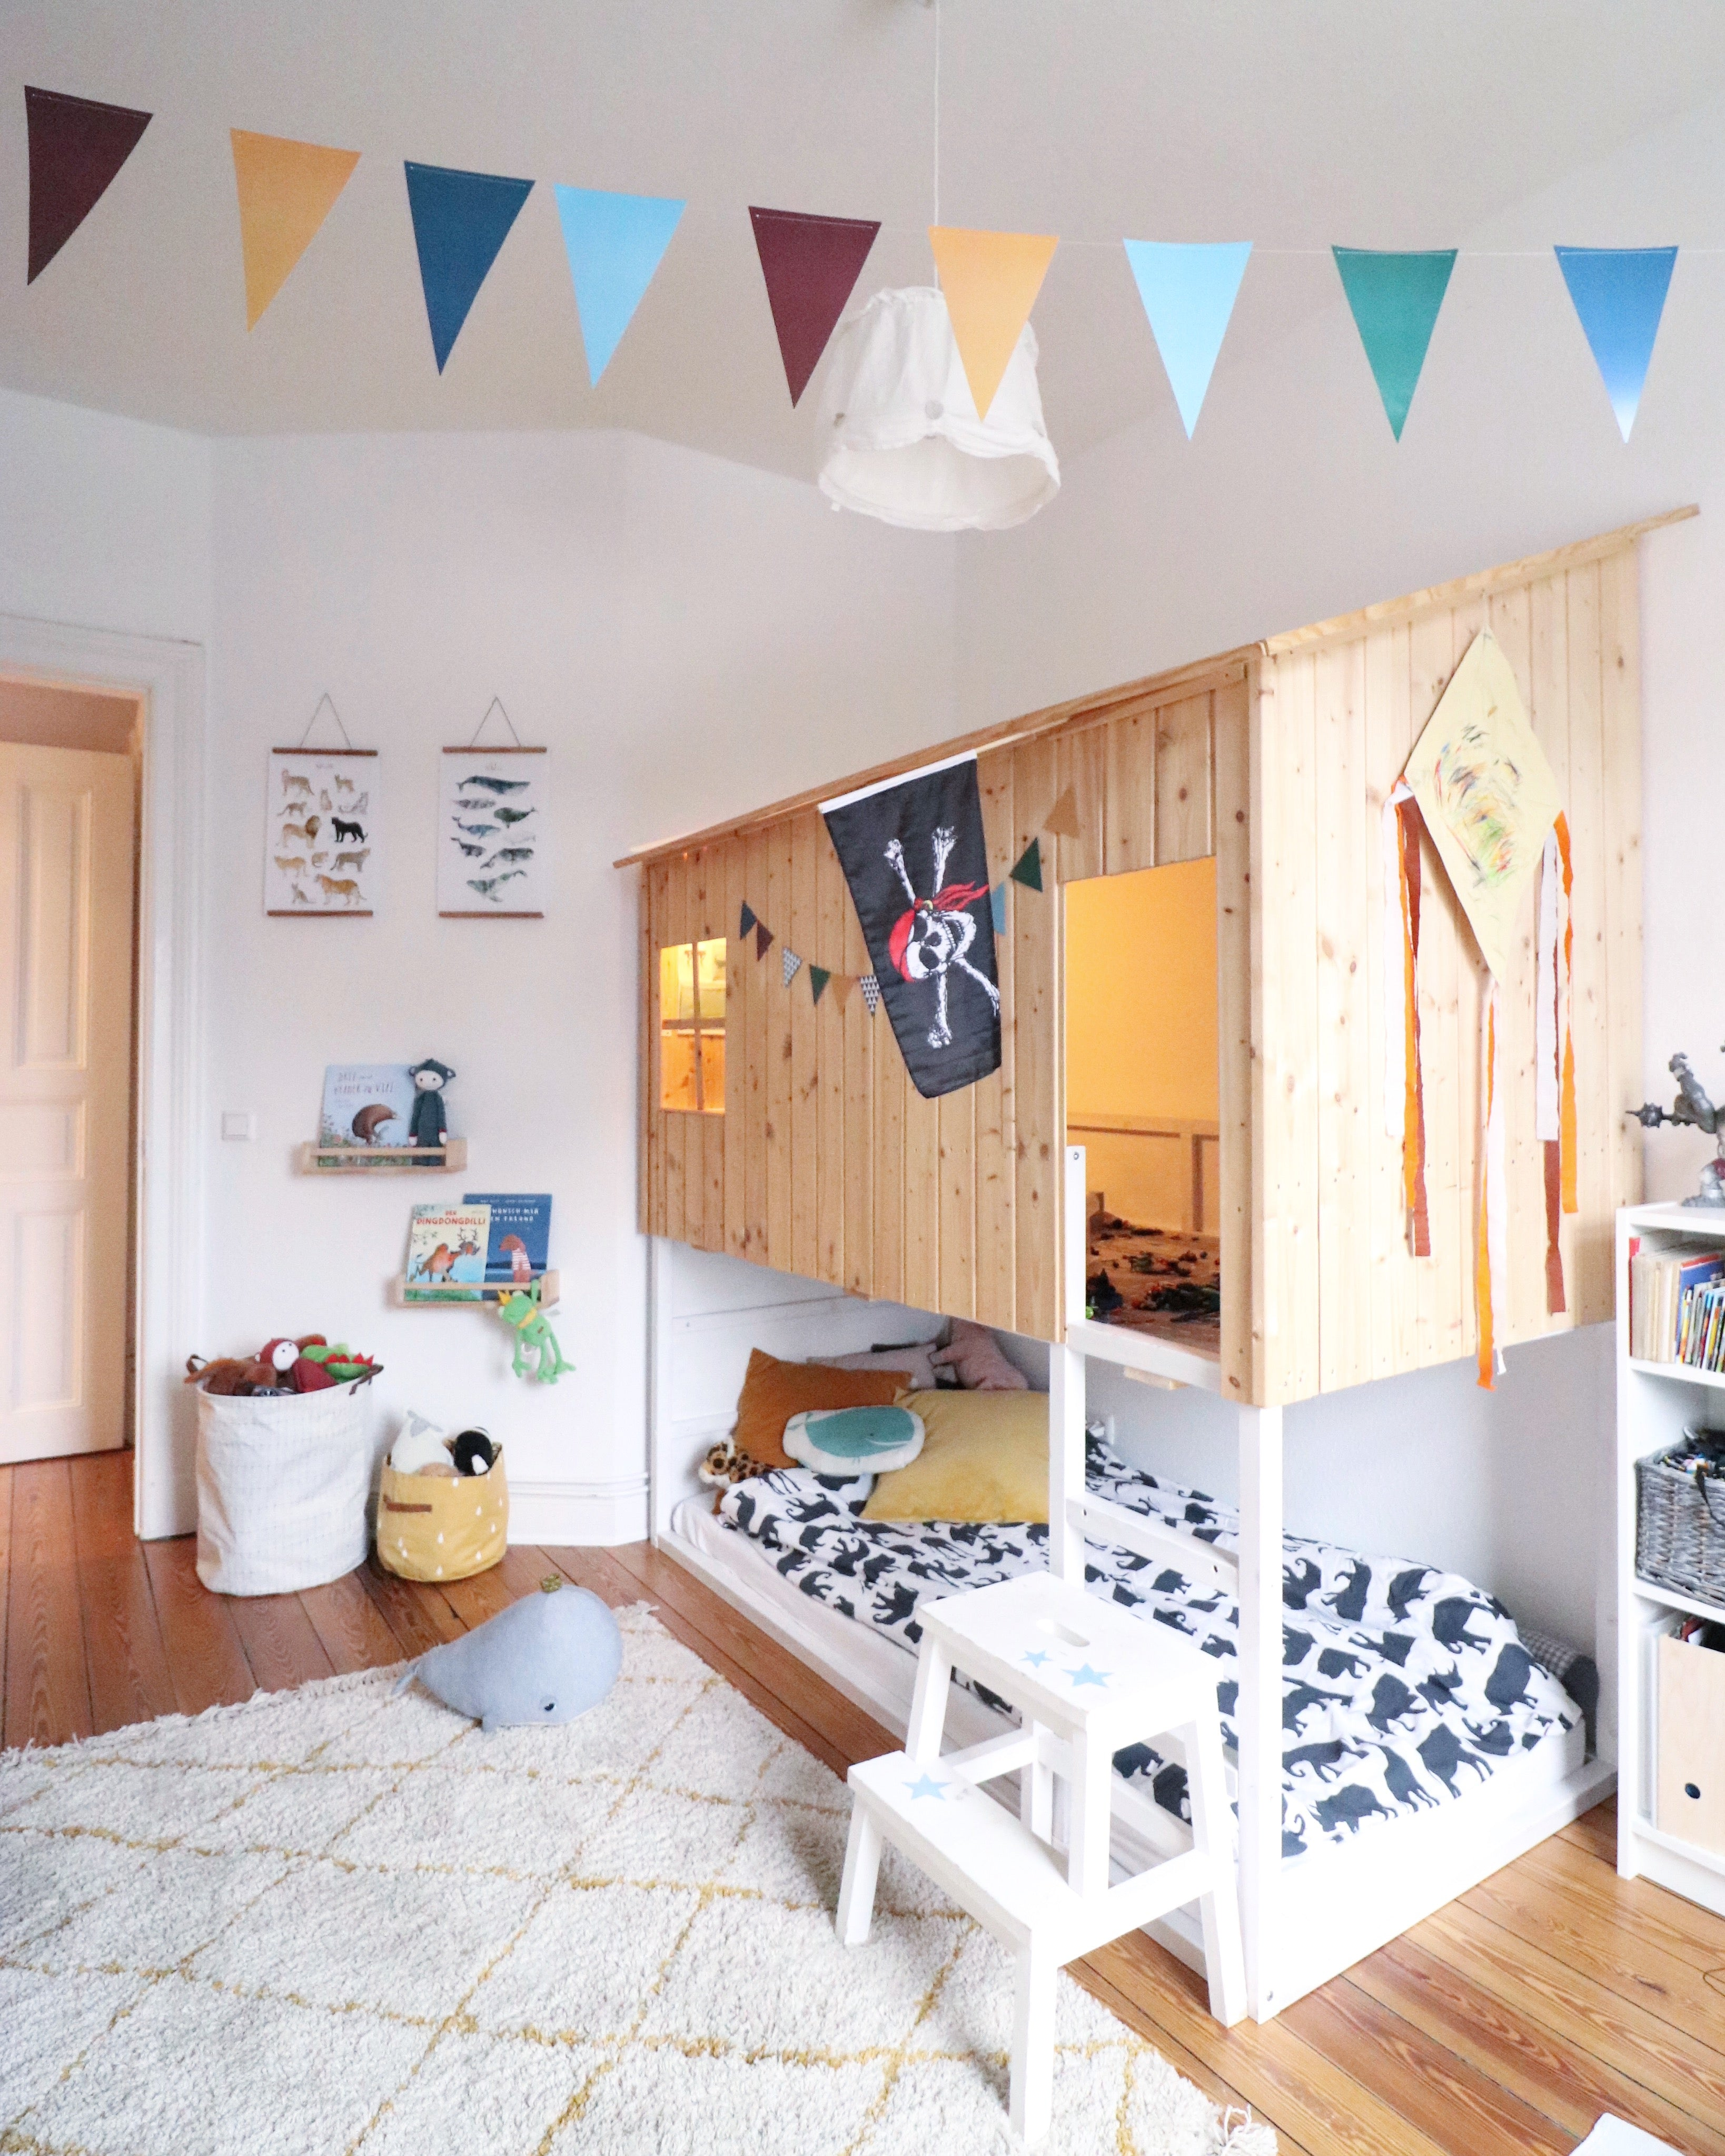 ikea-hack-kids-camp-bed-ideas-inspiration-kura-bed